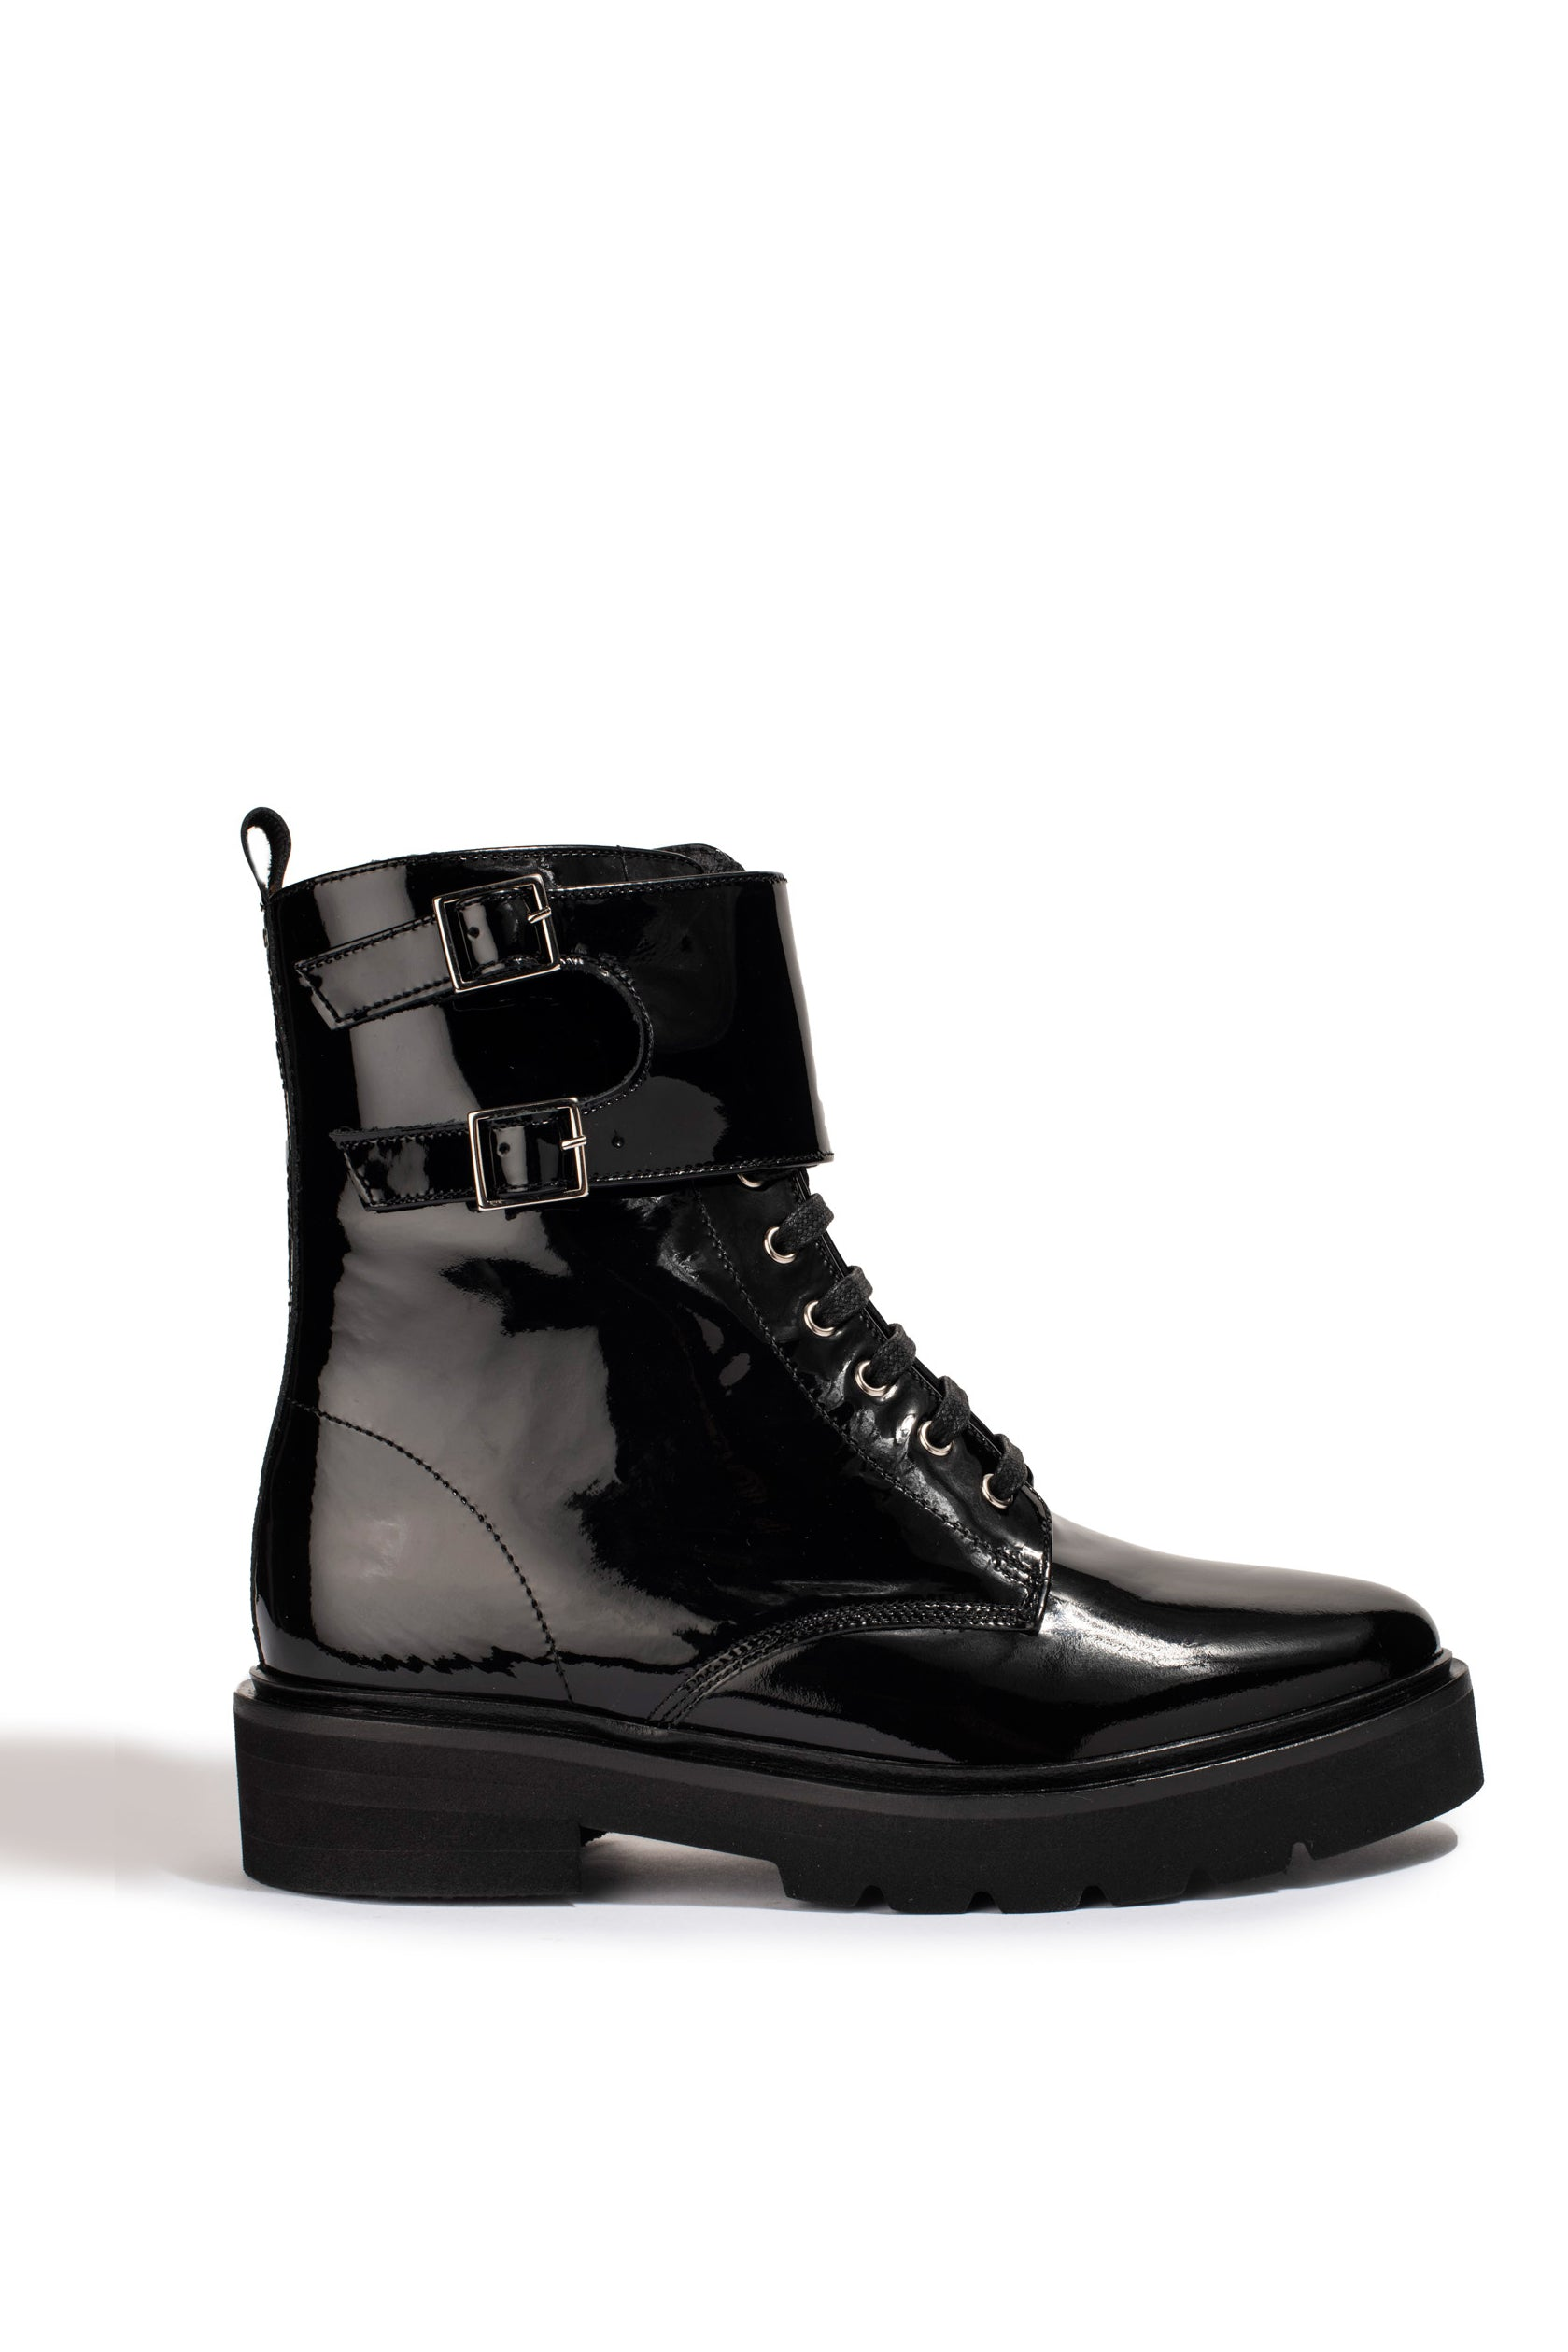 Bottines Lottie Vernis Noir - Anaki Paris